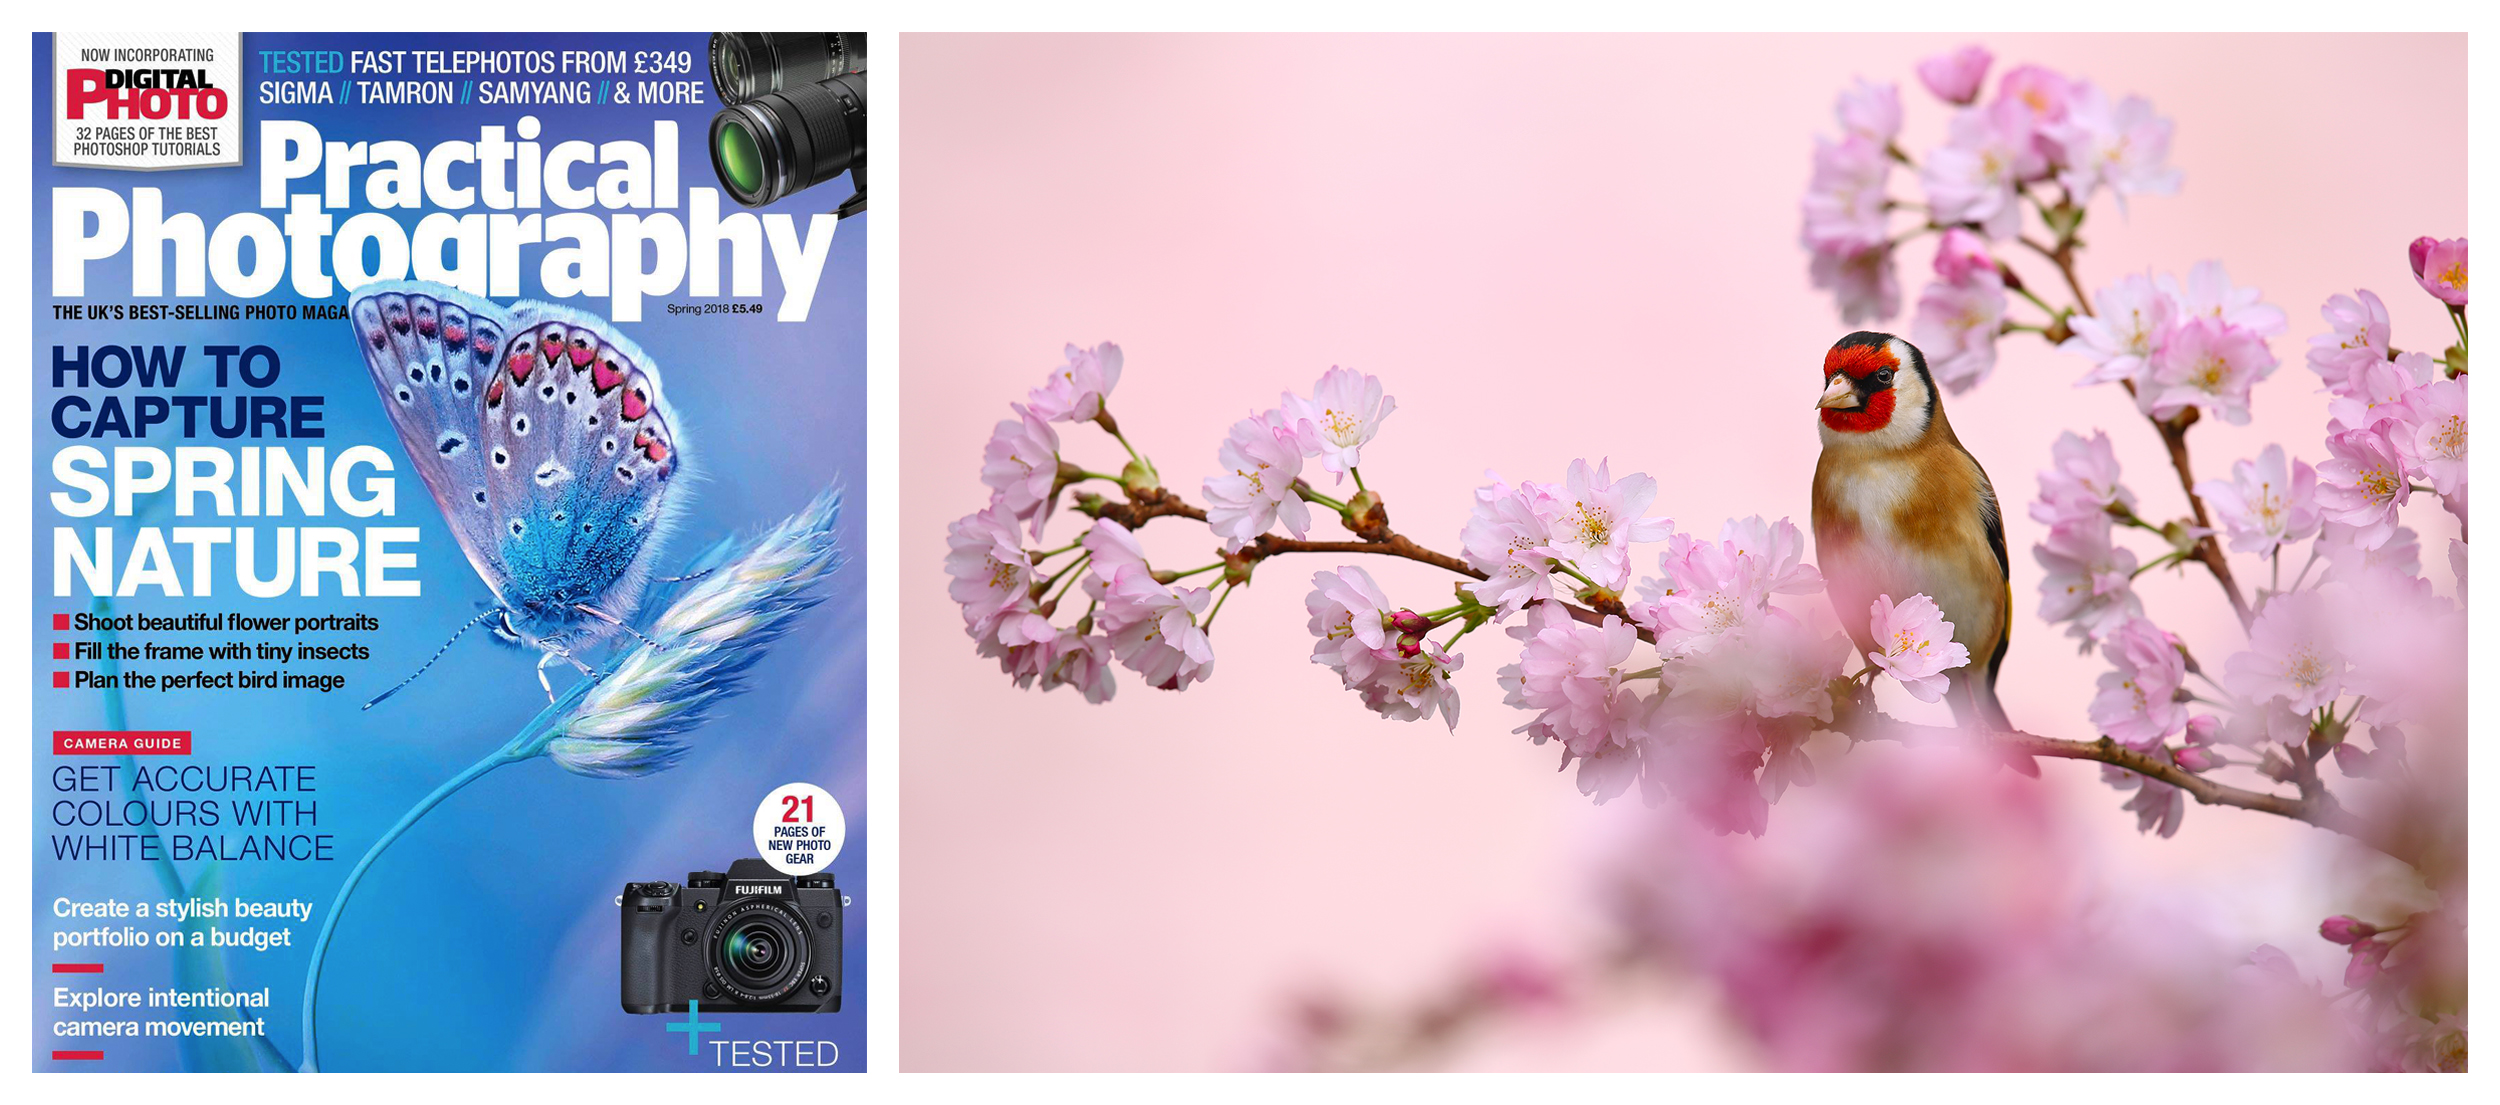 Simon Roy, Yorkshire, York, Wetherby, British, UK, wildlife photographer, RSPB, goldfinch, spring, practical, photogra